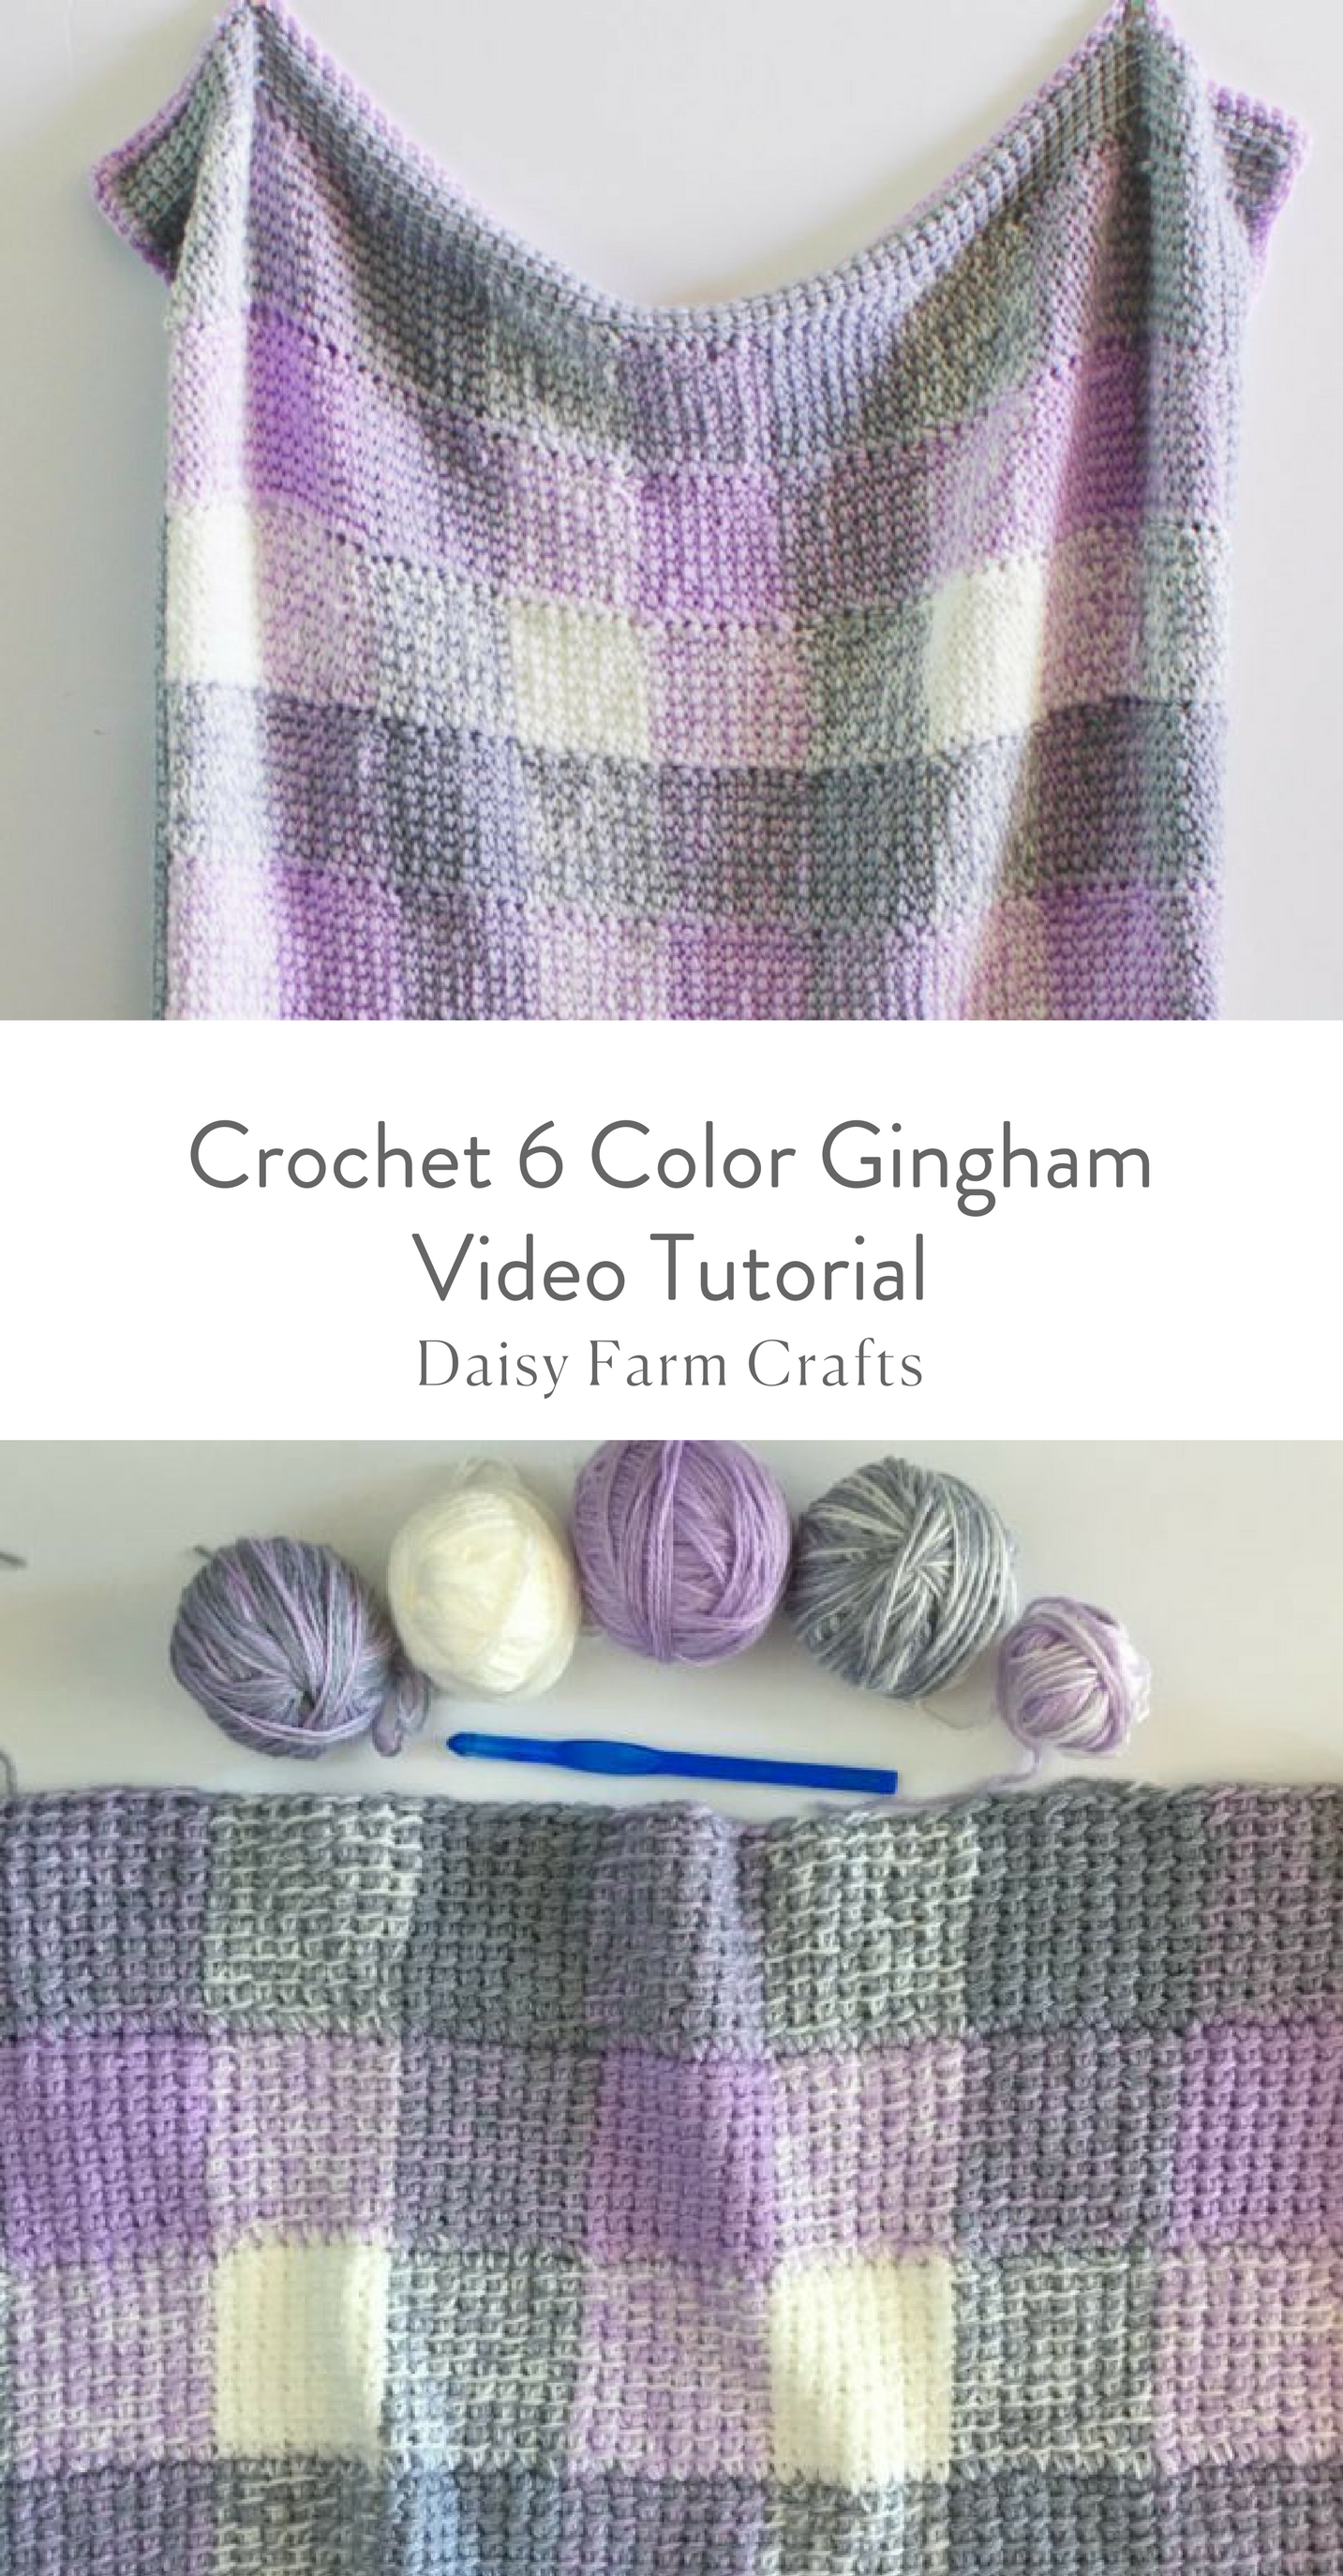 Crochet 6 Color Gingham Video Tutorial | Ganchillo o Croche ...